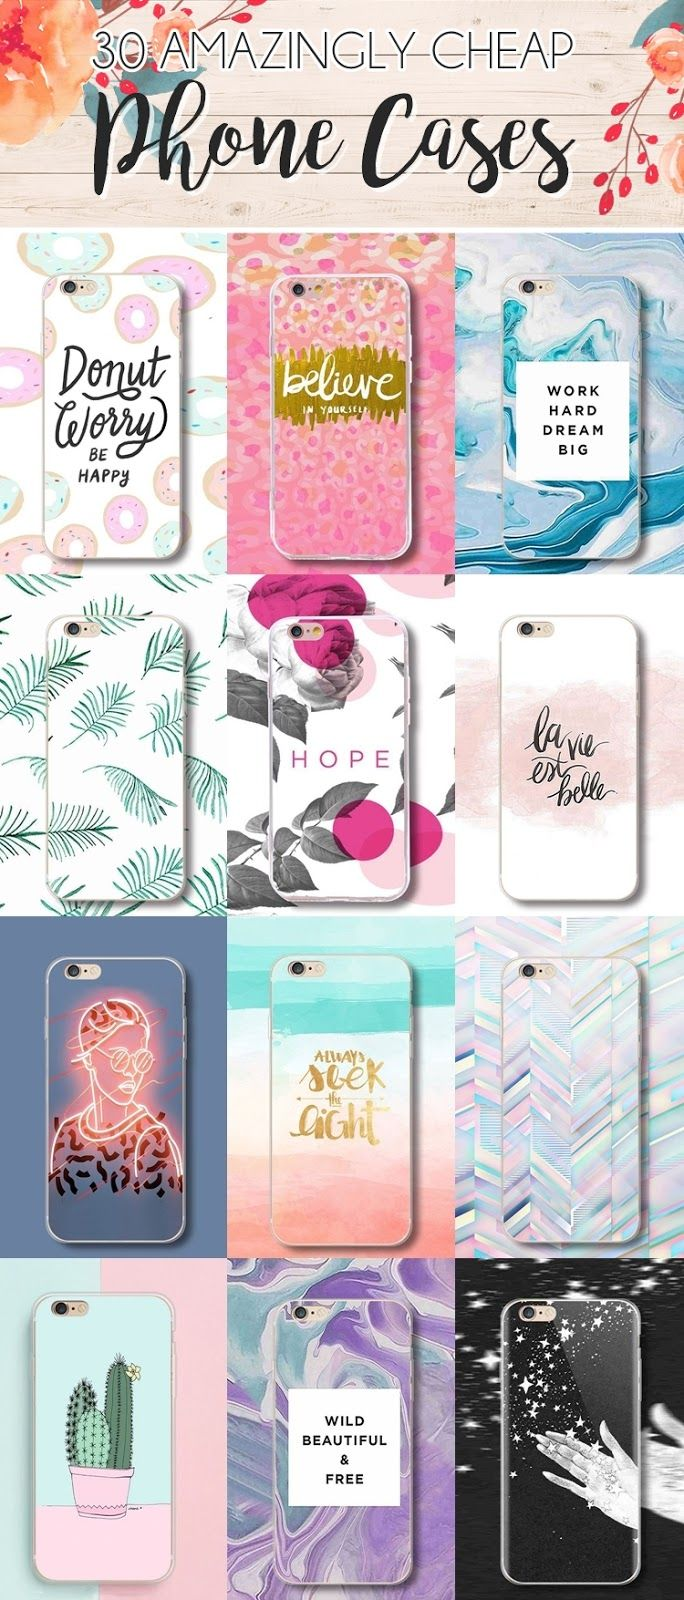 Check out these amazing phone cases. So cheap and on trend!